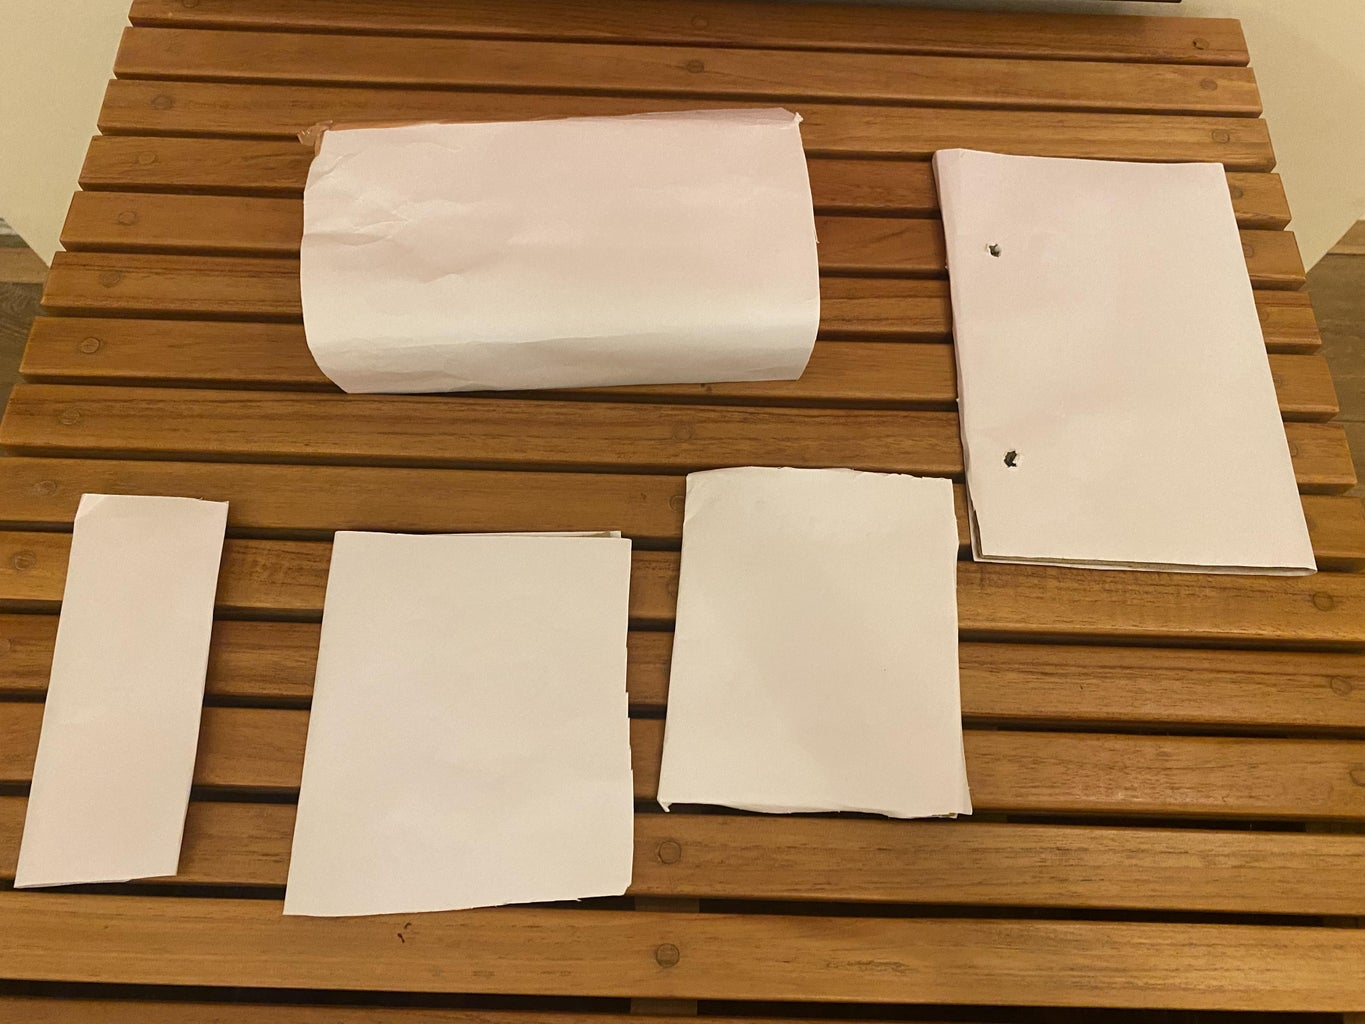 Cover the Cardboard in Paper